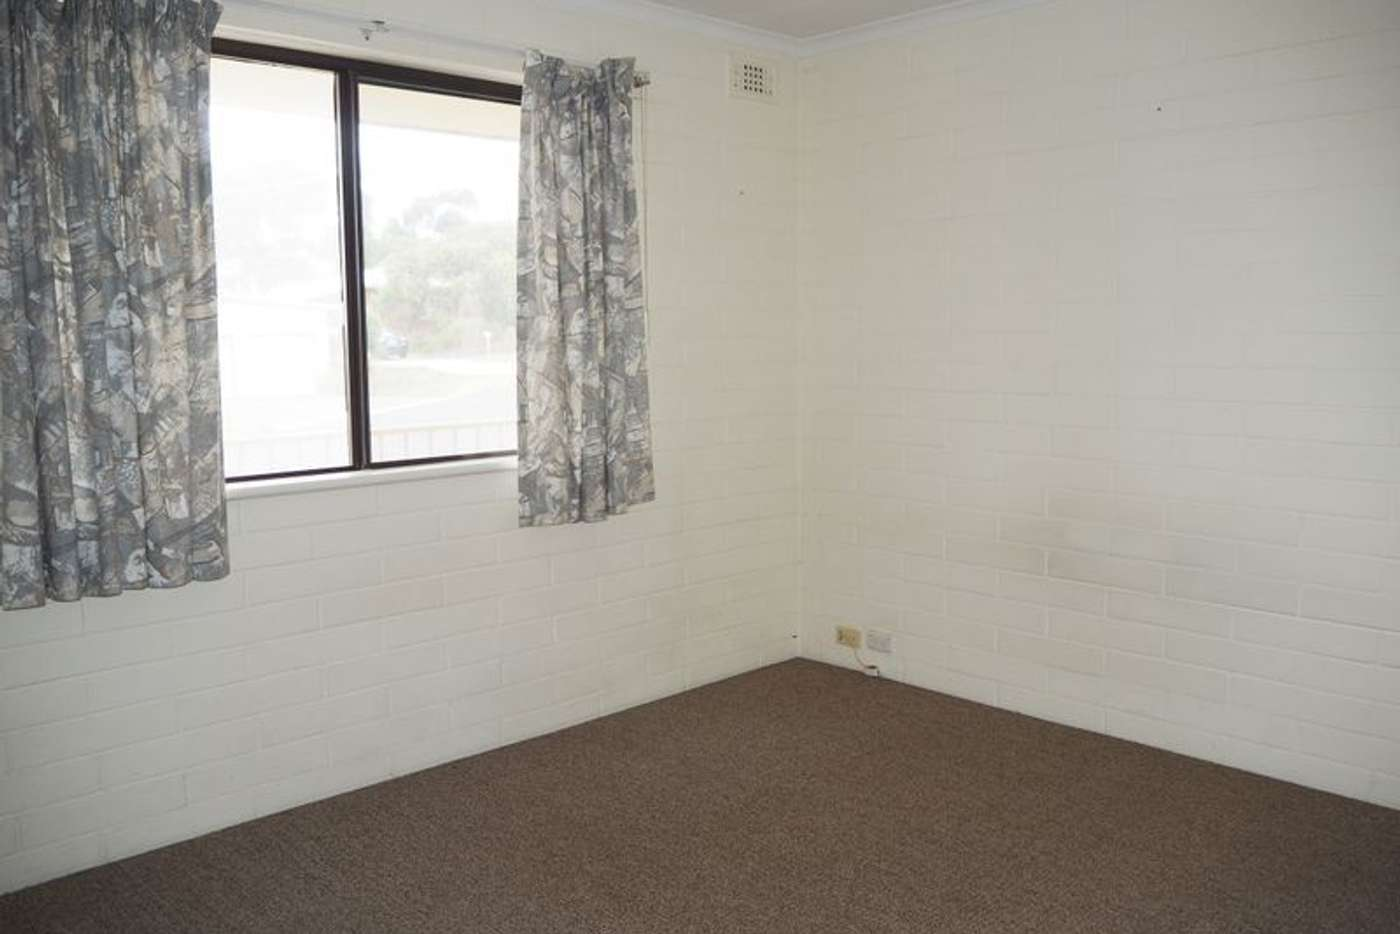 Sixth view of Homely unit listing, 4/53 Cook Street, Port Lincoln SA 5606